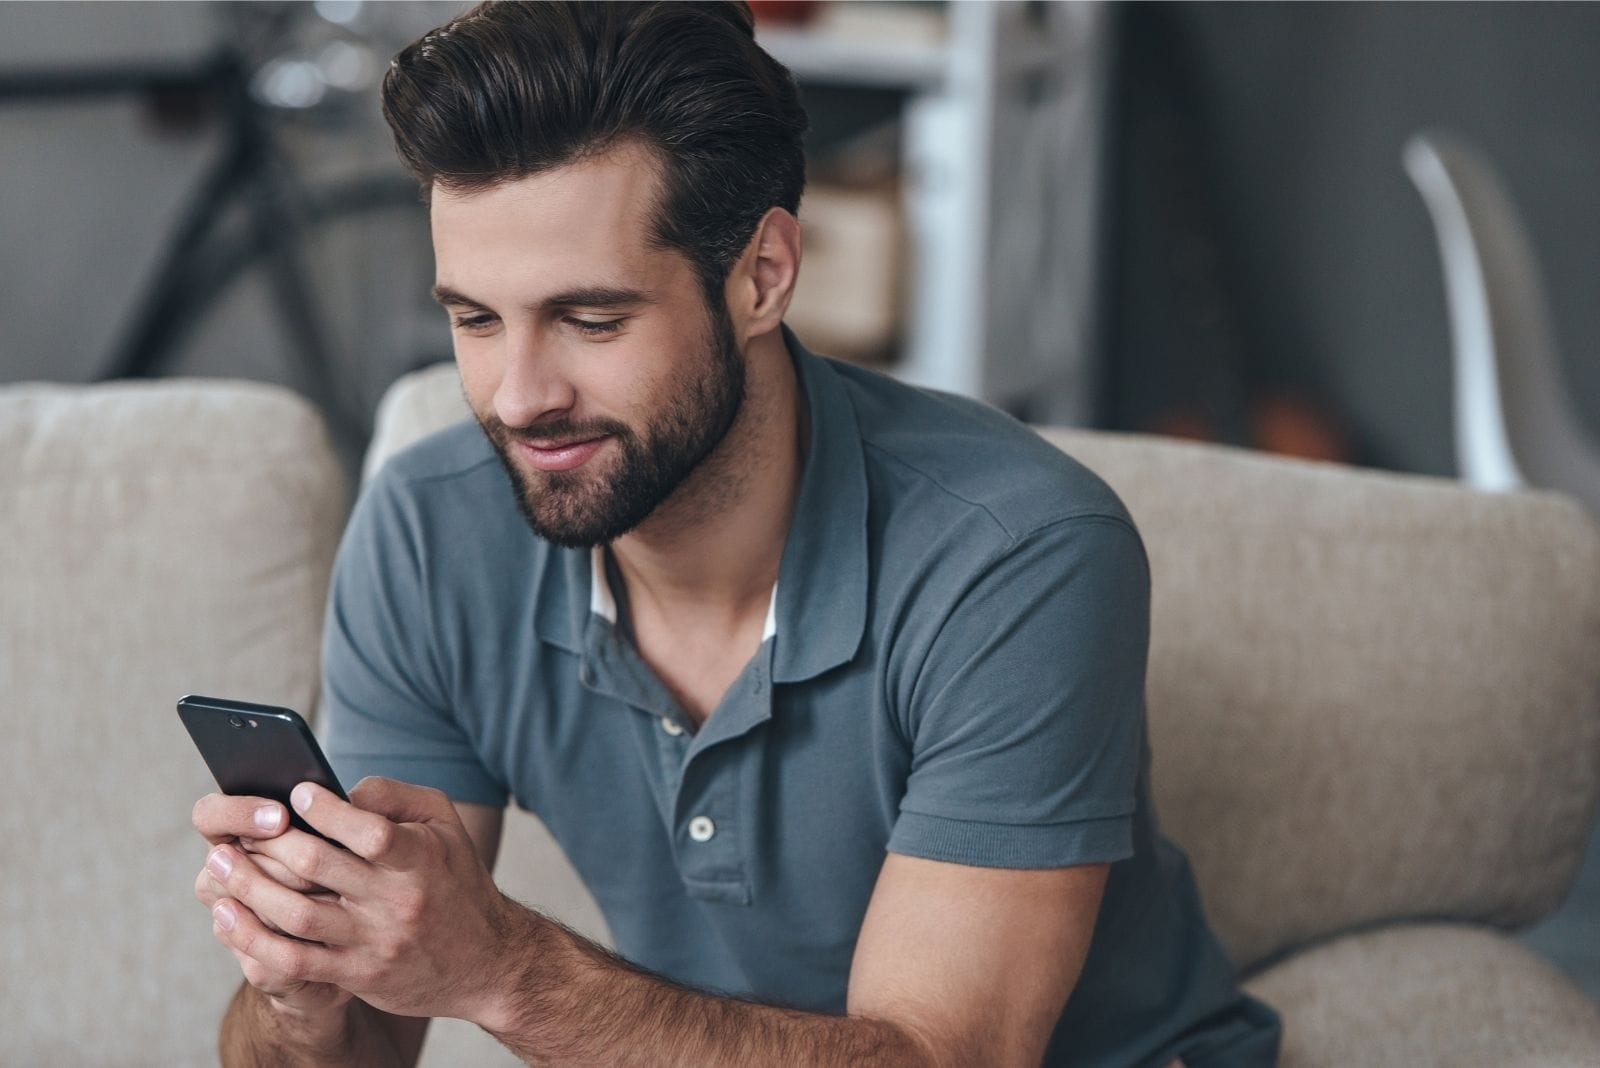 man smiling and texting while sitting in couch in casual shirt